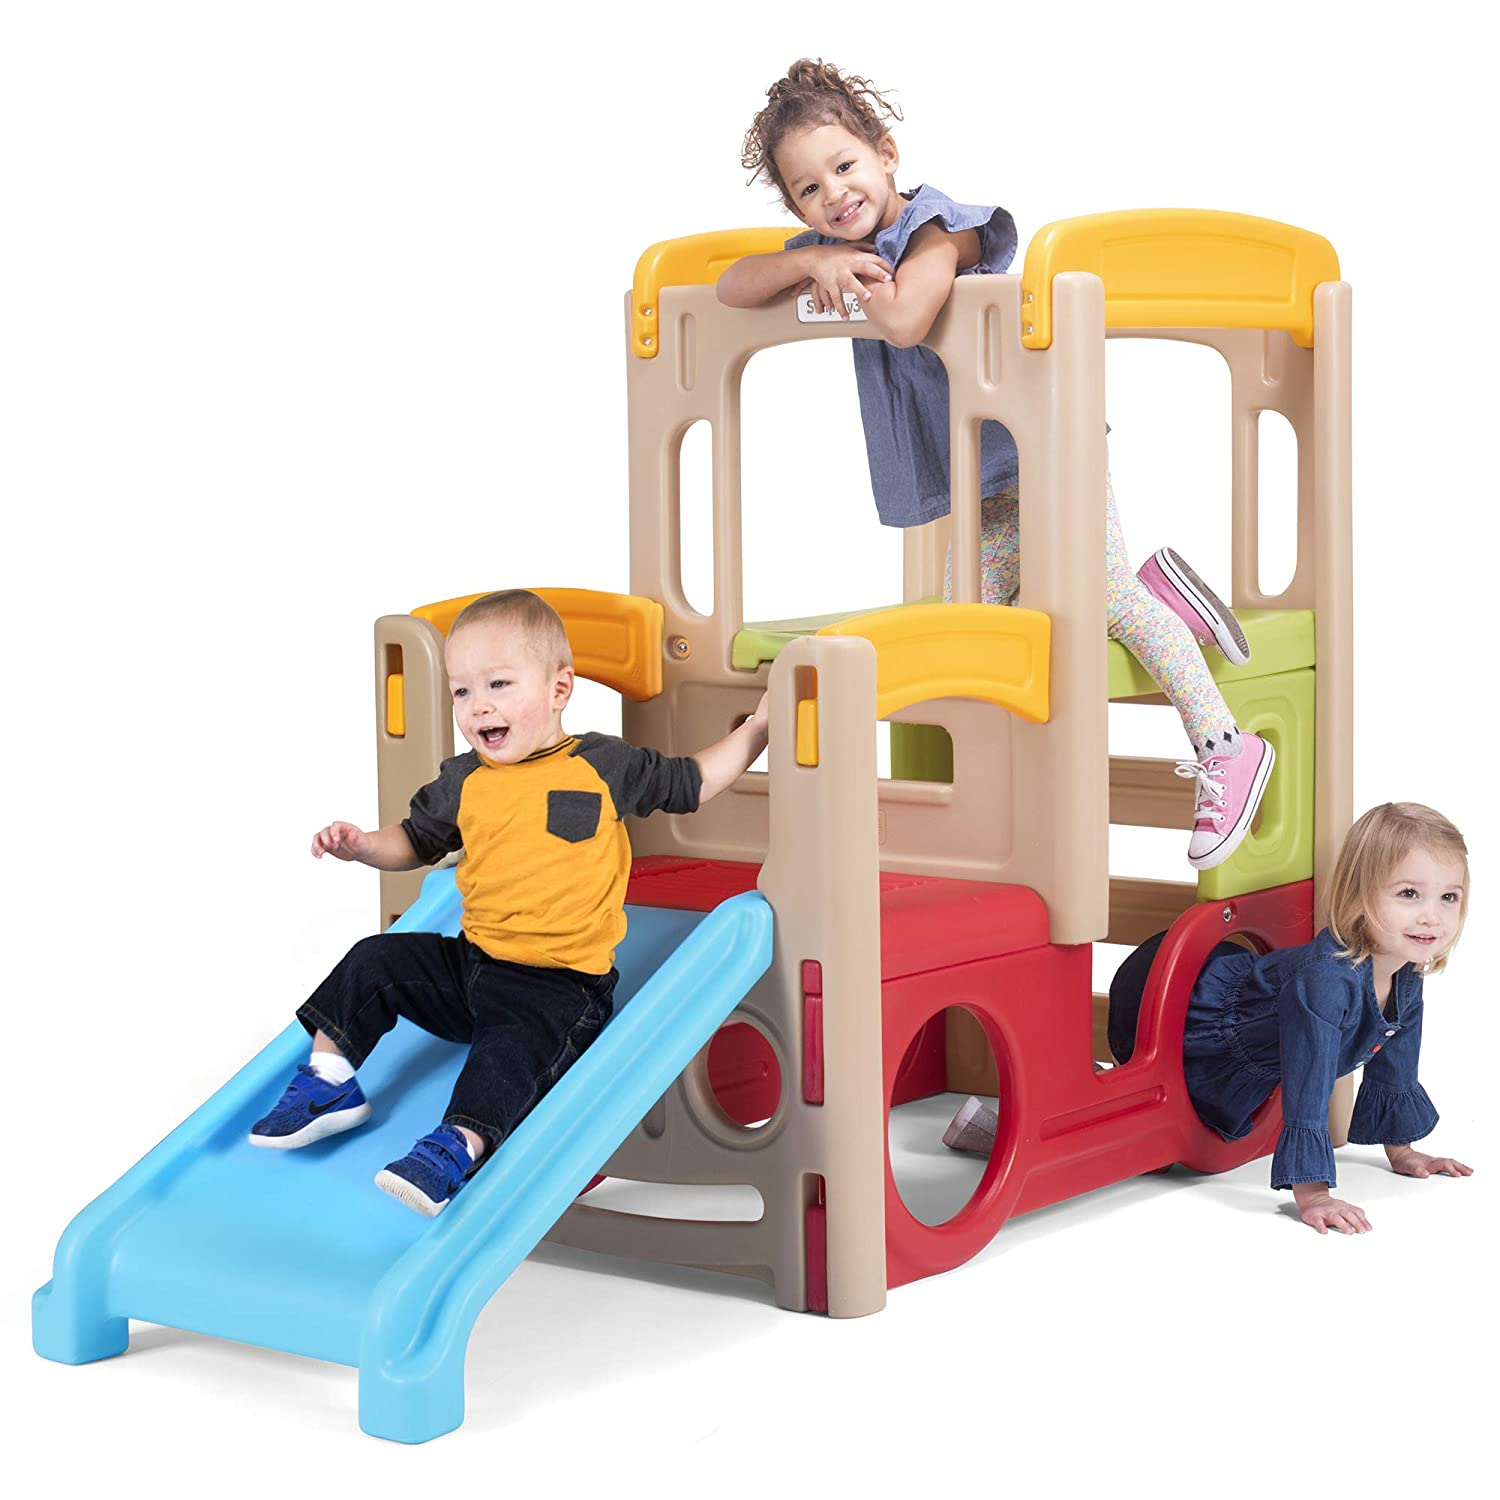 Simplay3 Young Explorers Adventure Climber - Indoor Outdoor Crawl Climb Drive Slide Playset for Children best backyard playset